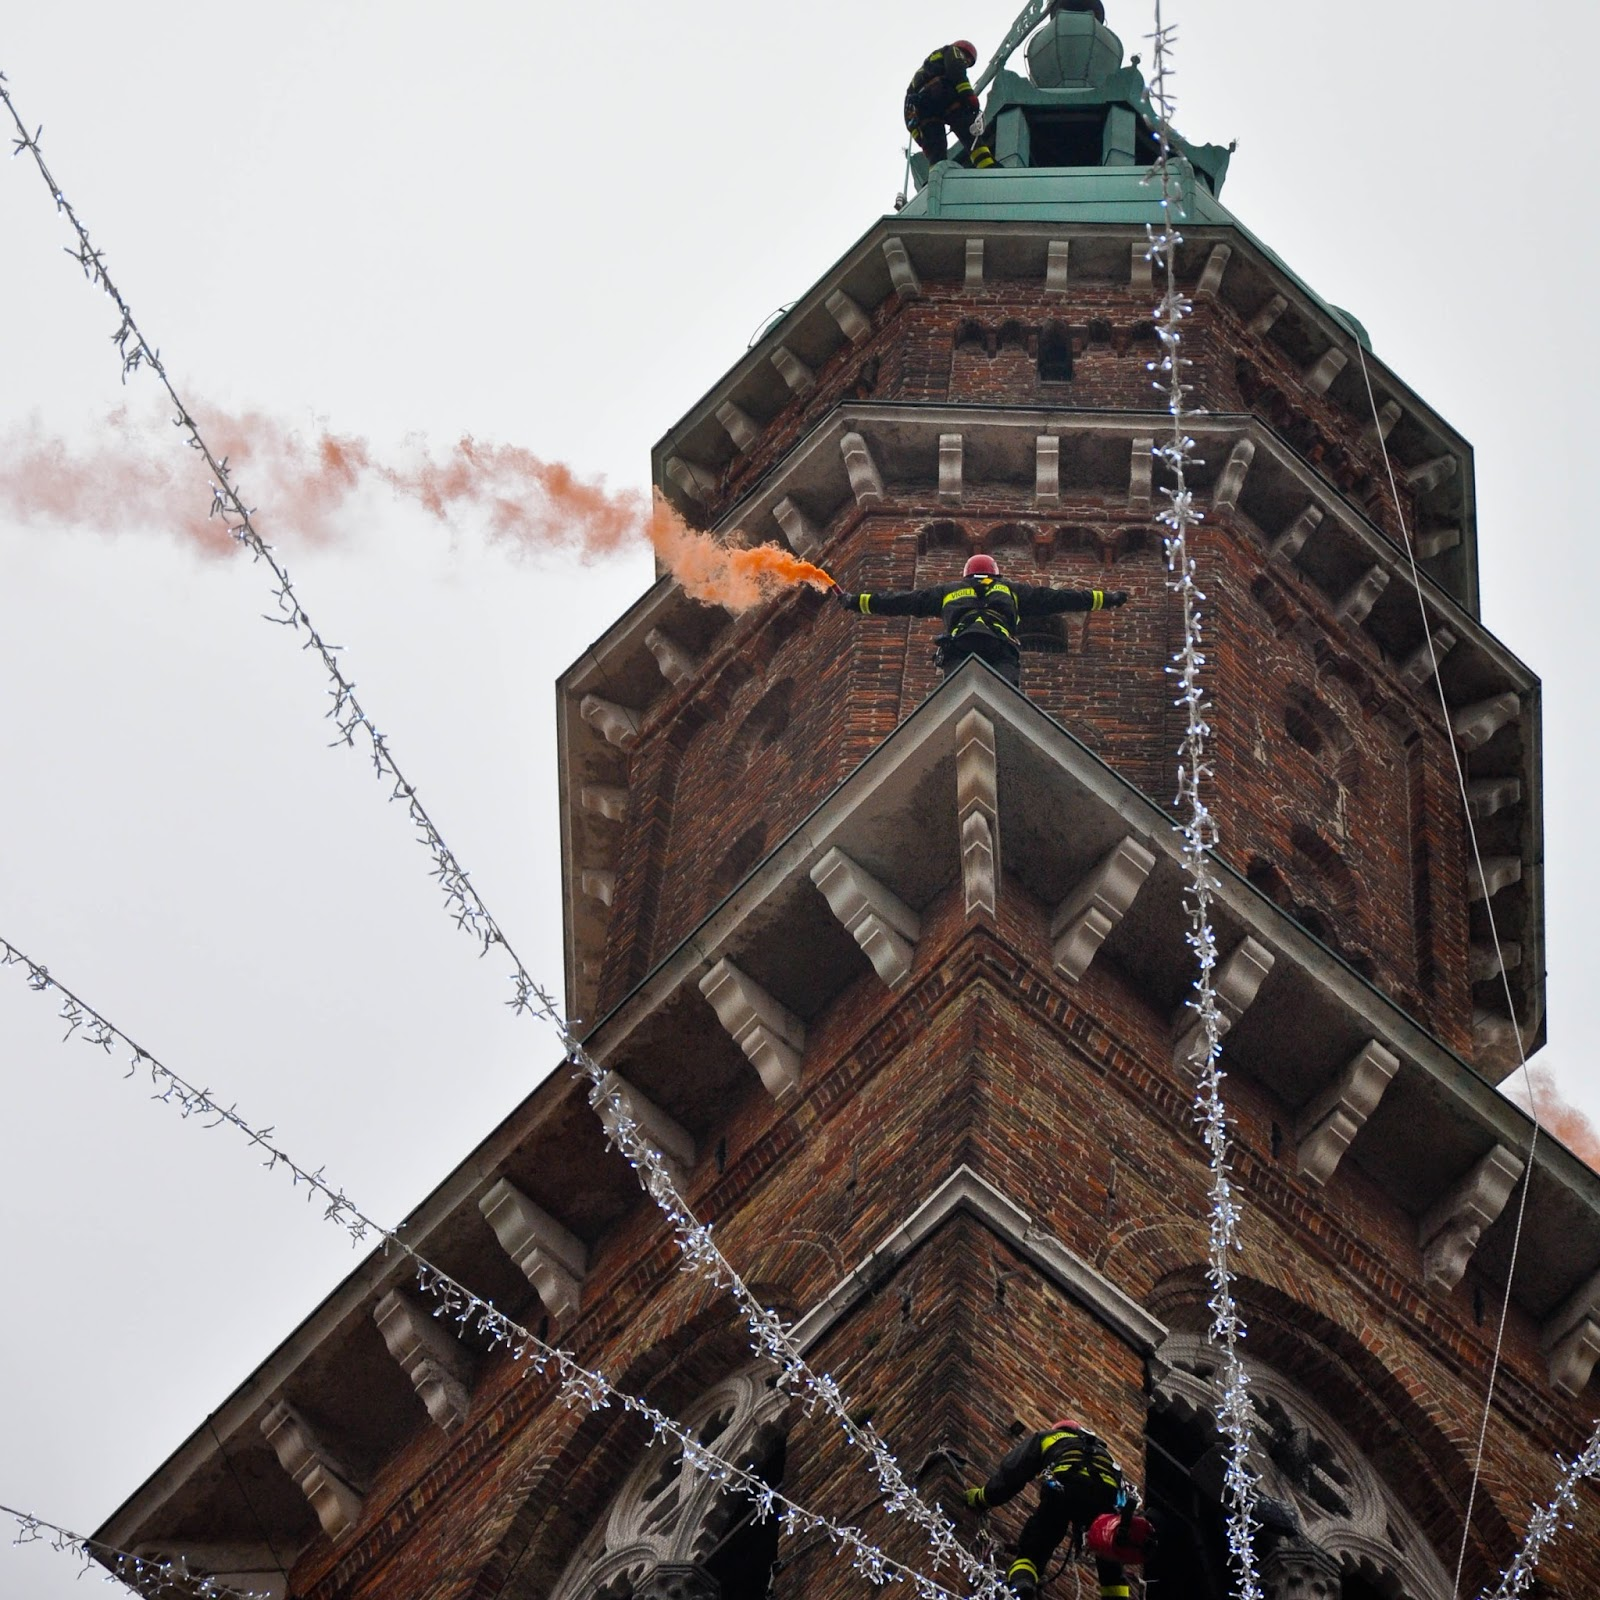 Firefighters demonstrating on top of the clock tower of Palladio's Basilica, Saint Barbara celebration, Vicenza, Veneto, Italy